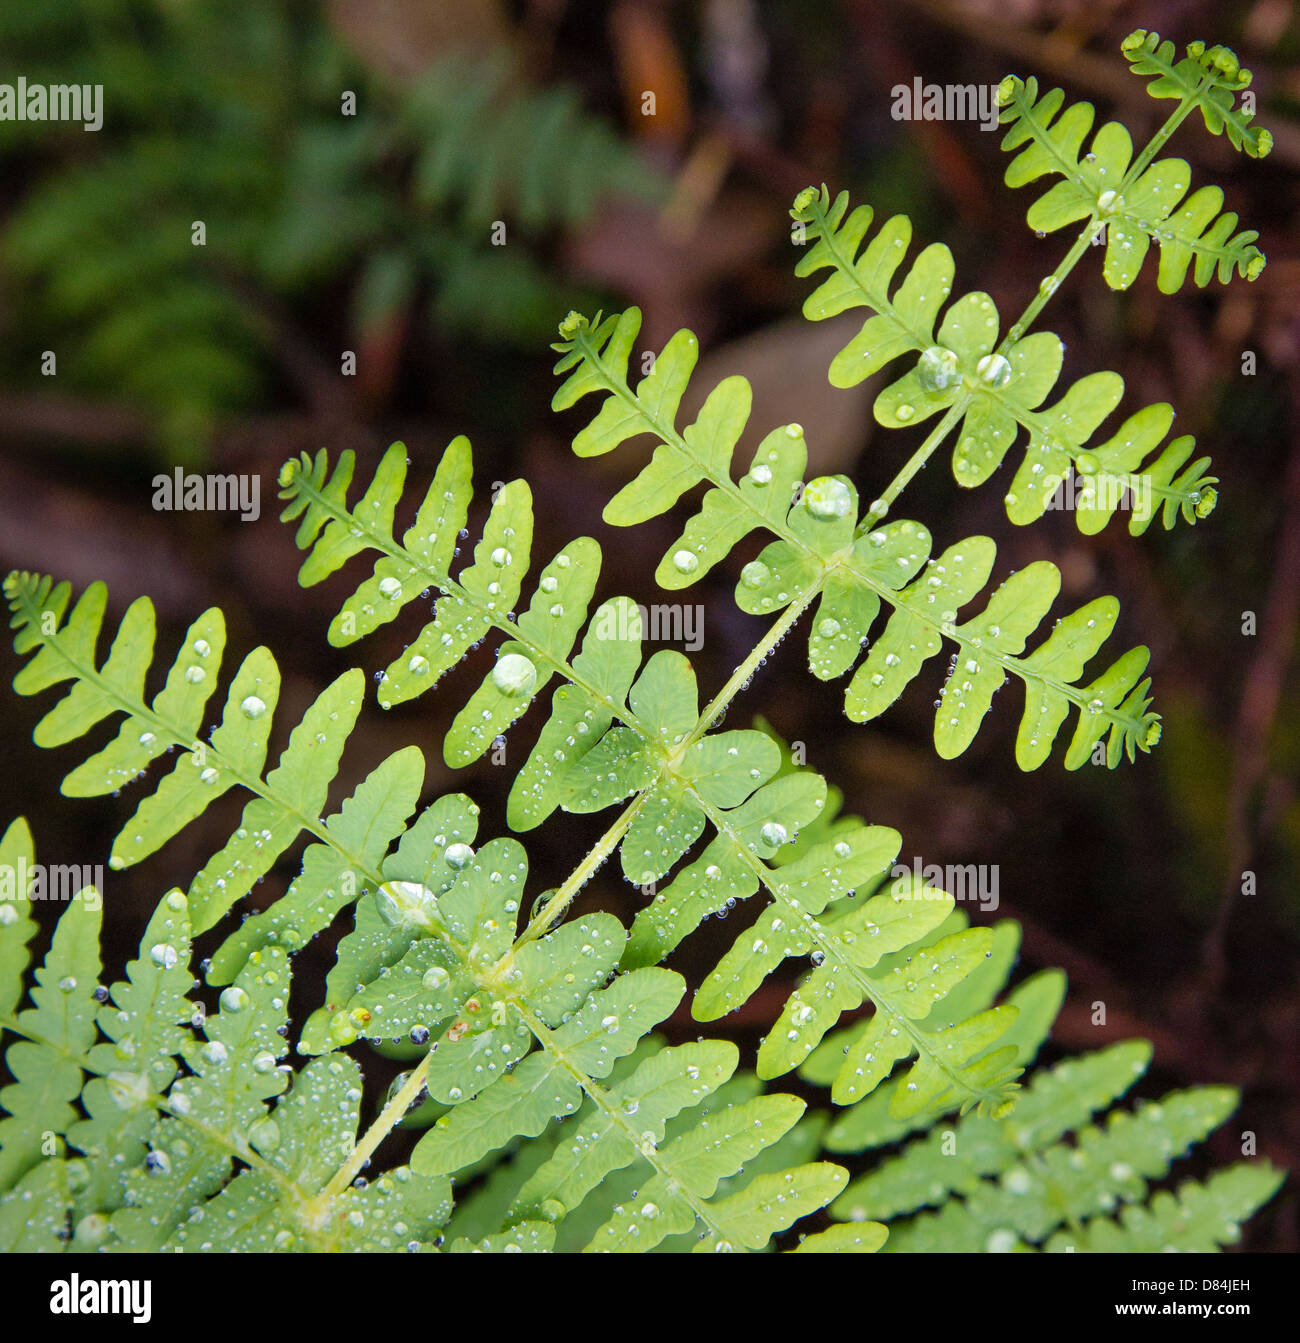 Symmetrical fern leaves covered in rain drops South East Asia - Stock Image